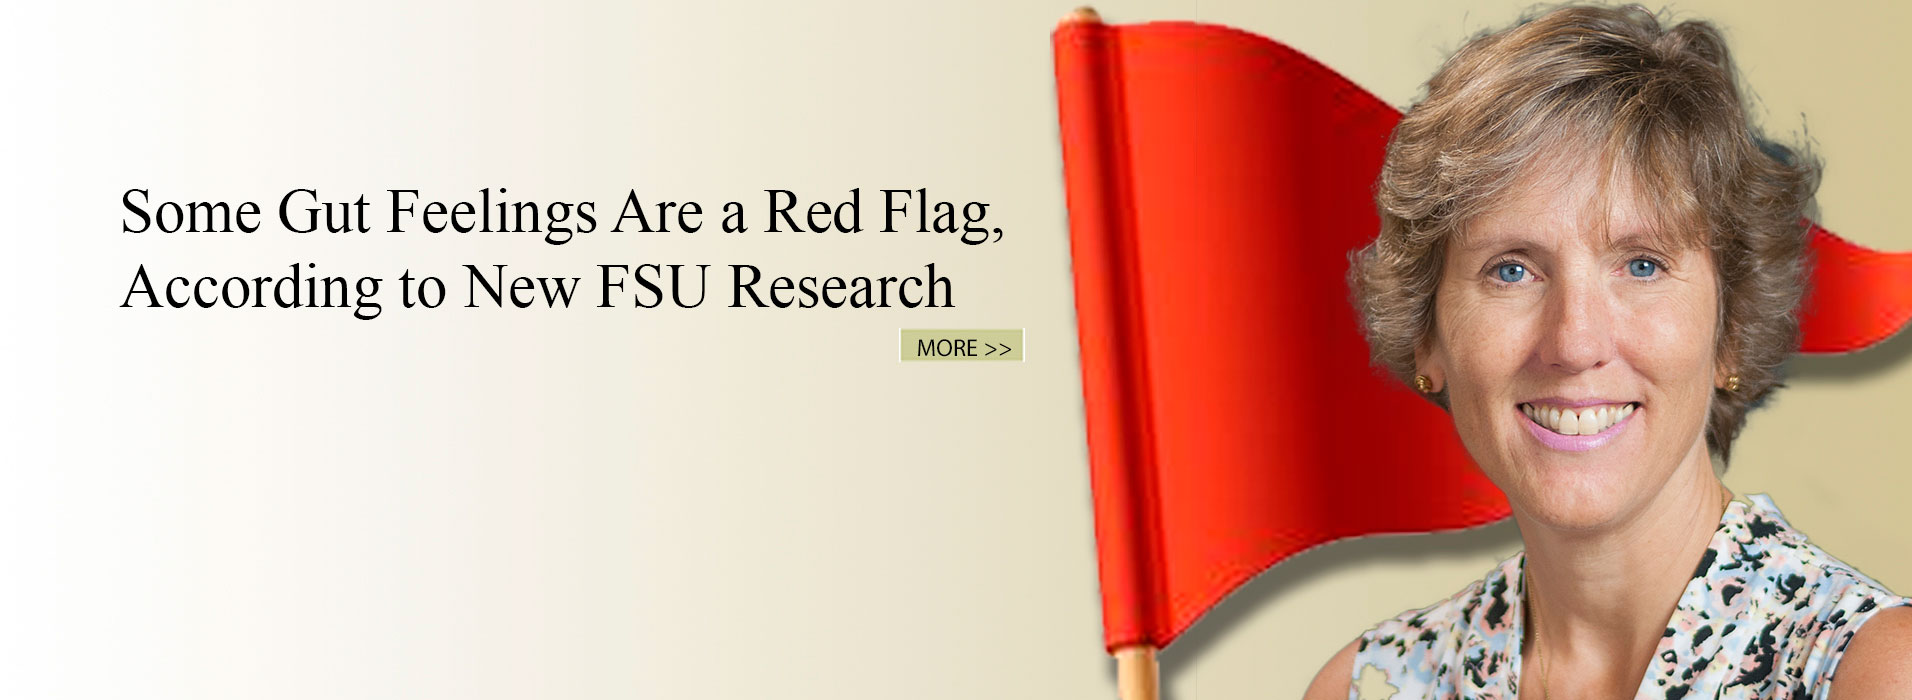 Some Gut Feelings Are a Red Flag, According to New FSU Research